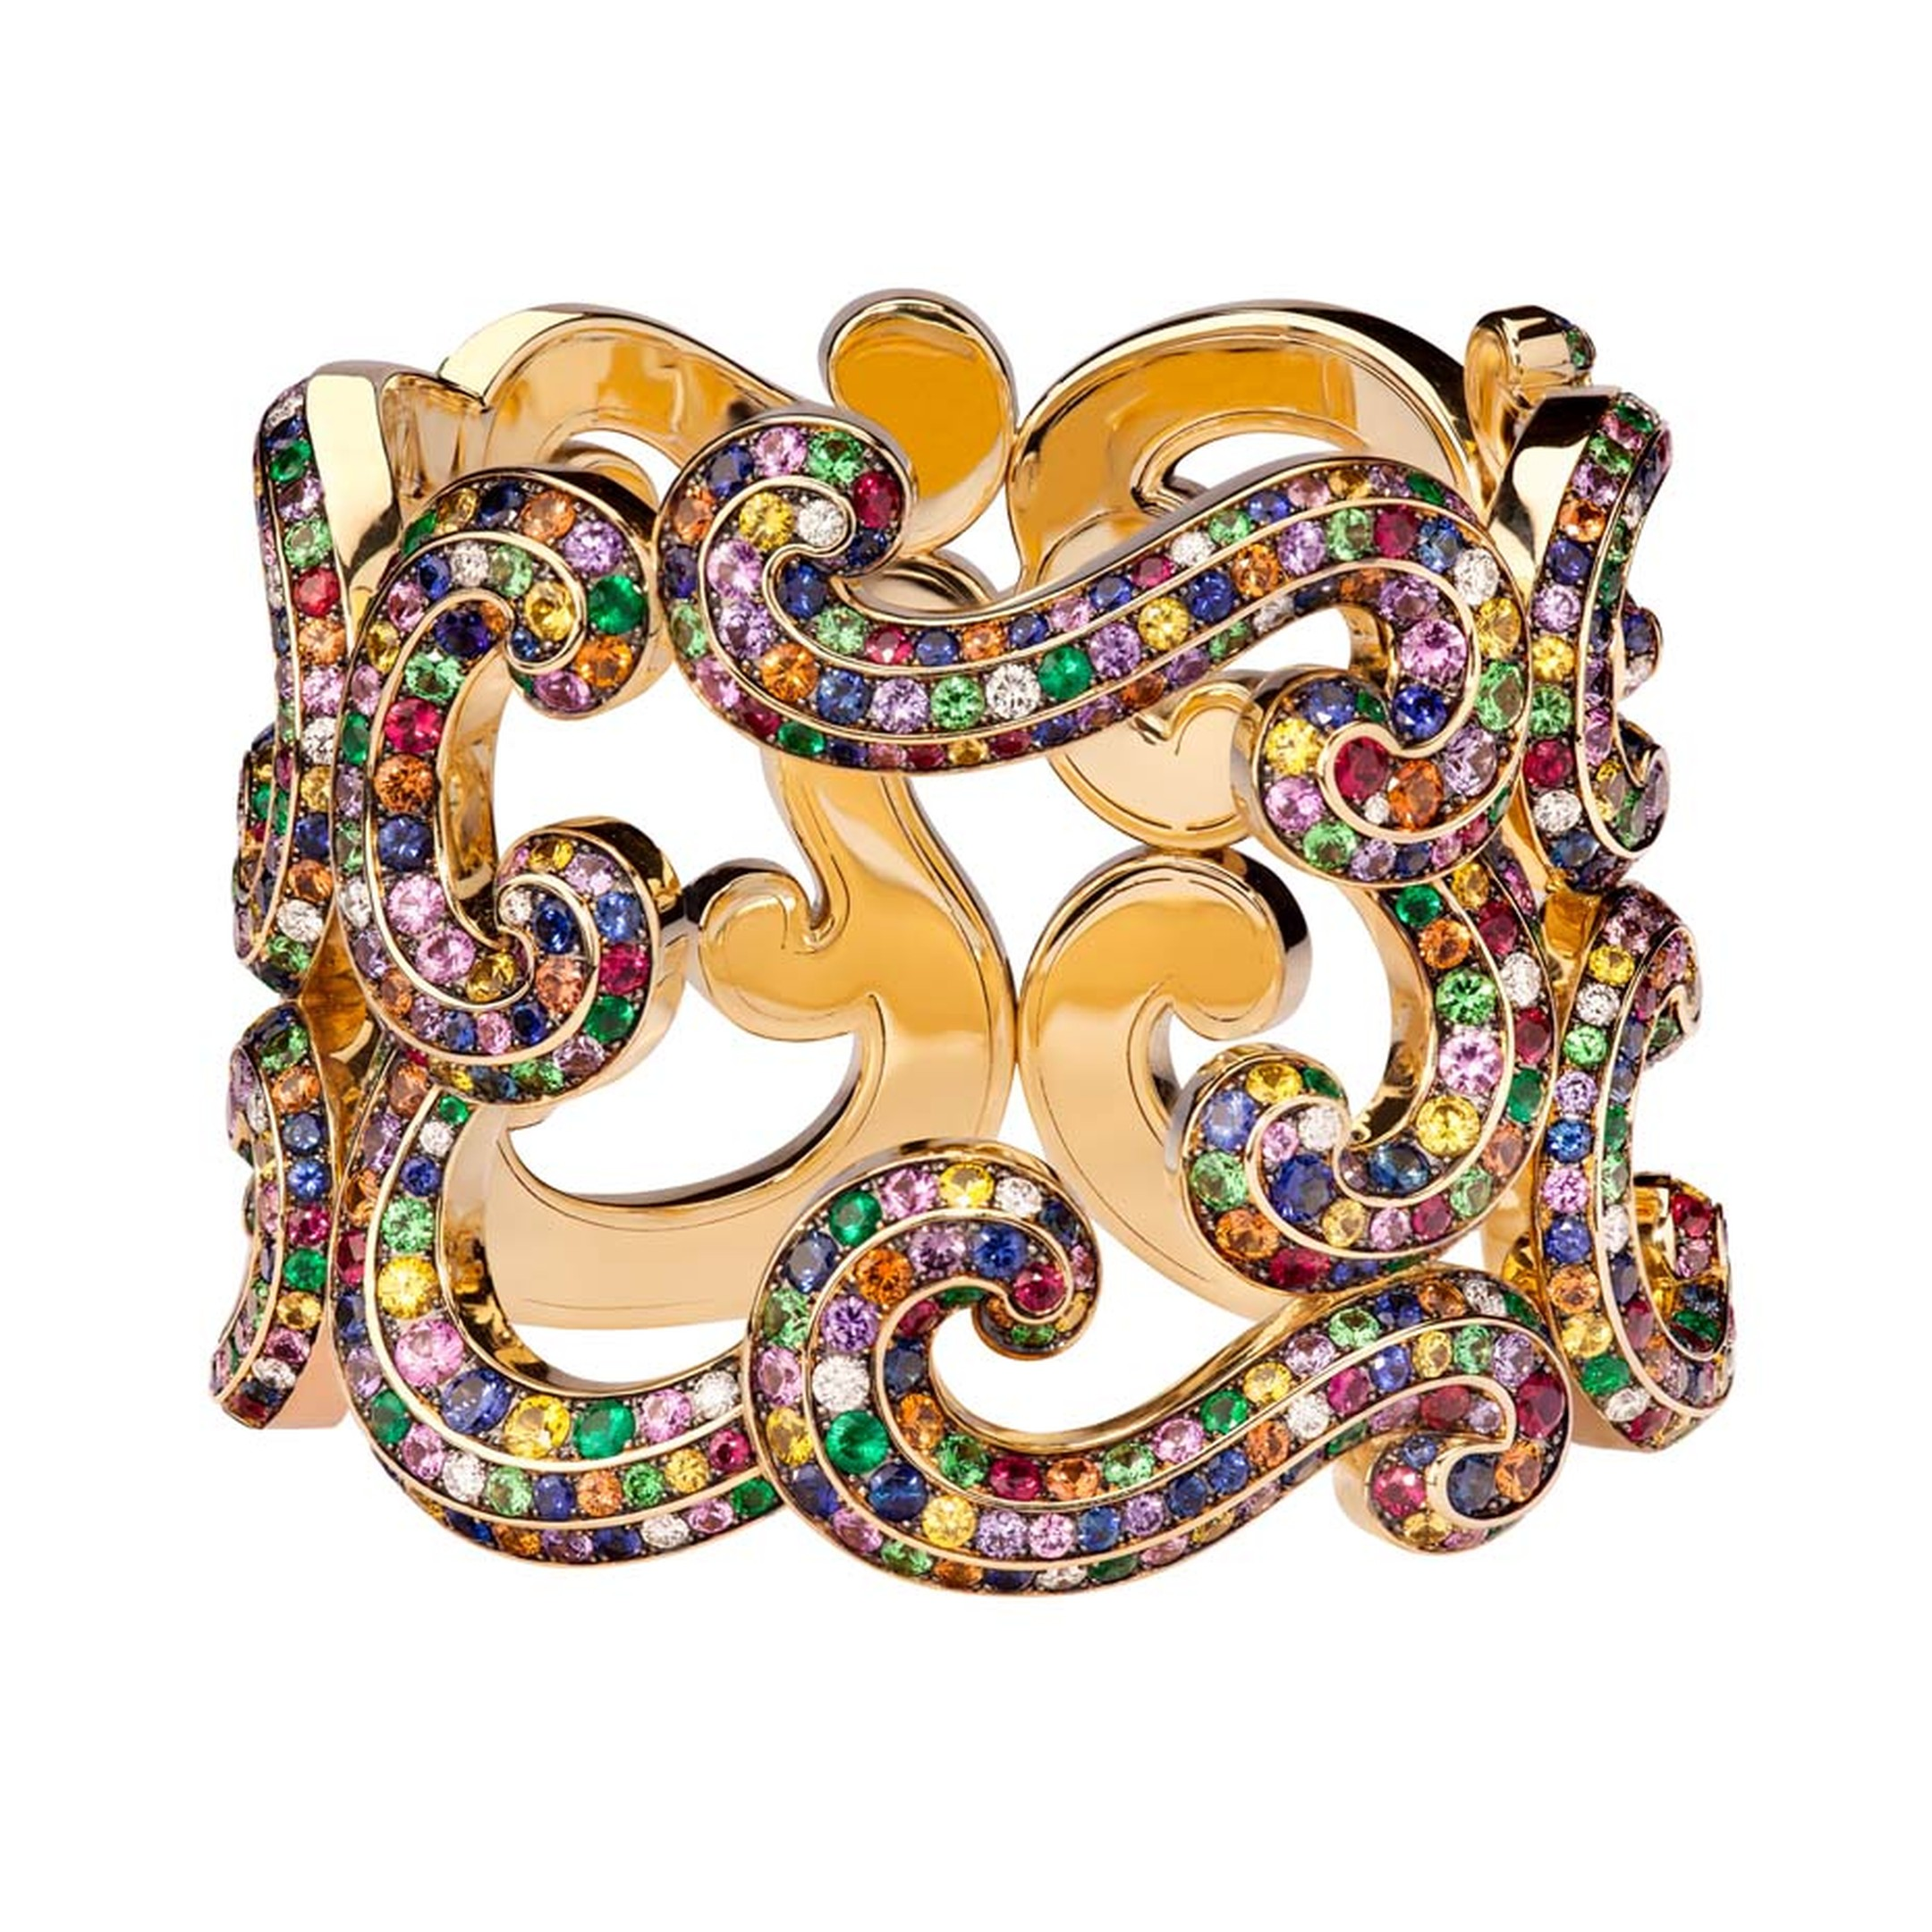 Fabergé Rococo Lace Multi-Coloured bangle.